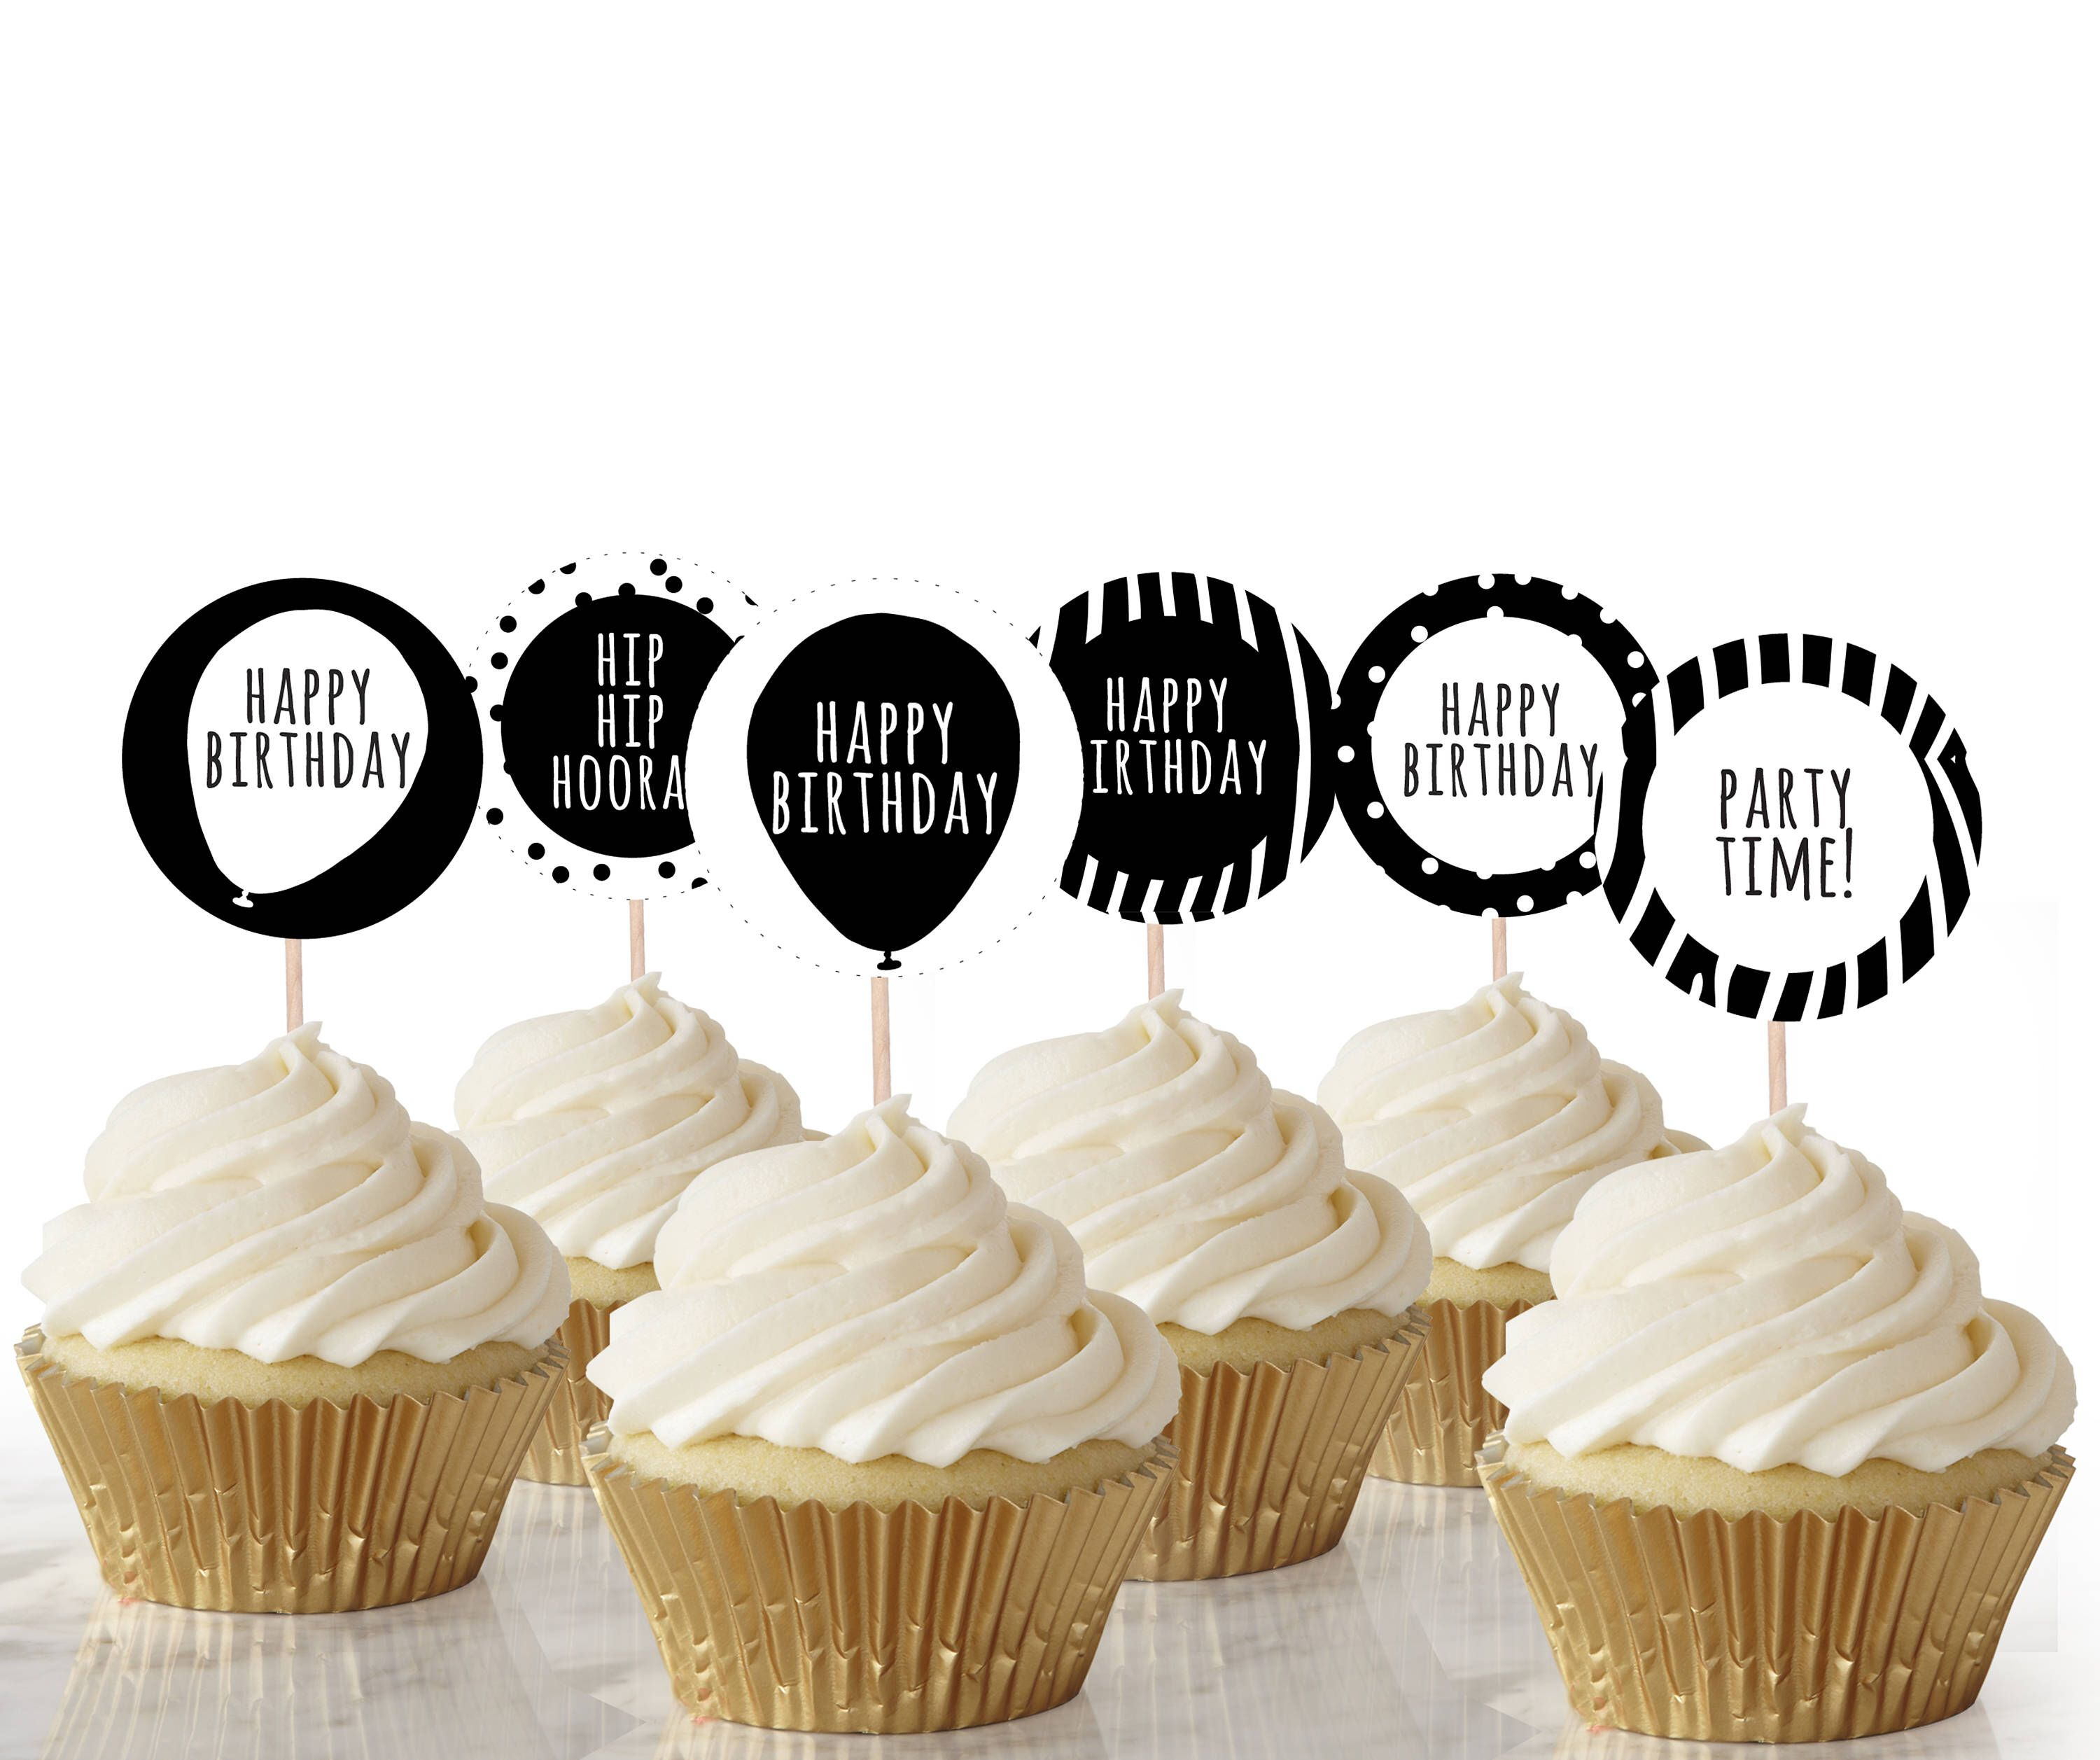 Black And White Party Cupcake Toppers Instant Download Printable Monochrome Black And White Birthday Party Cake Cupcake Topper Editable Party Cakes Cupcake Toppers Template Black And White Party Decorations